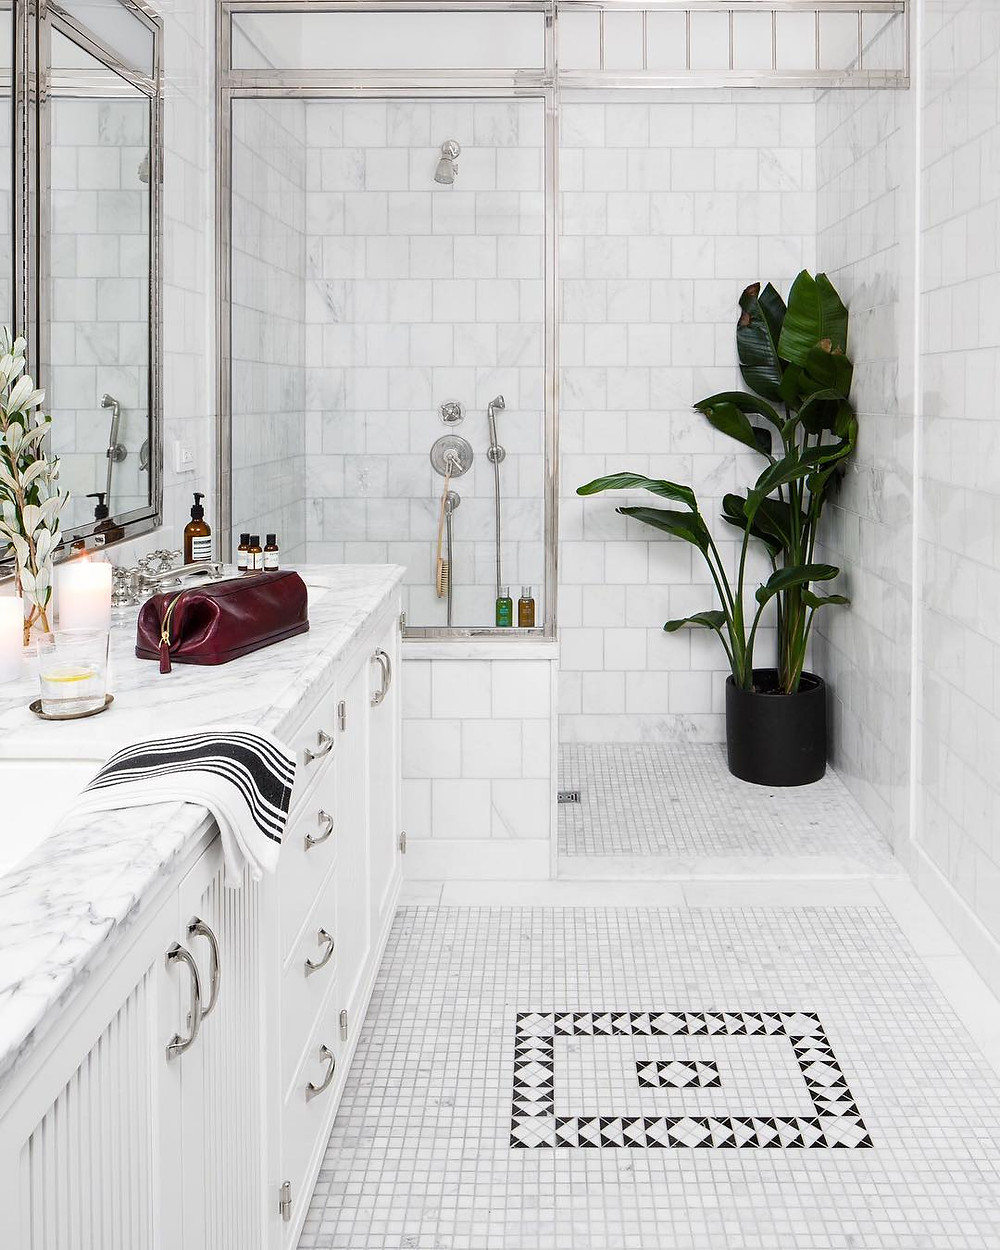 Glam bathroom design with white marble countertops, marble shower tiles, and white tile flooring